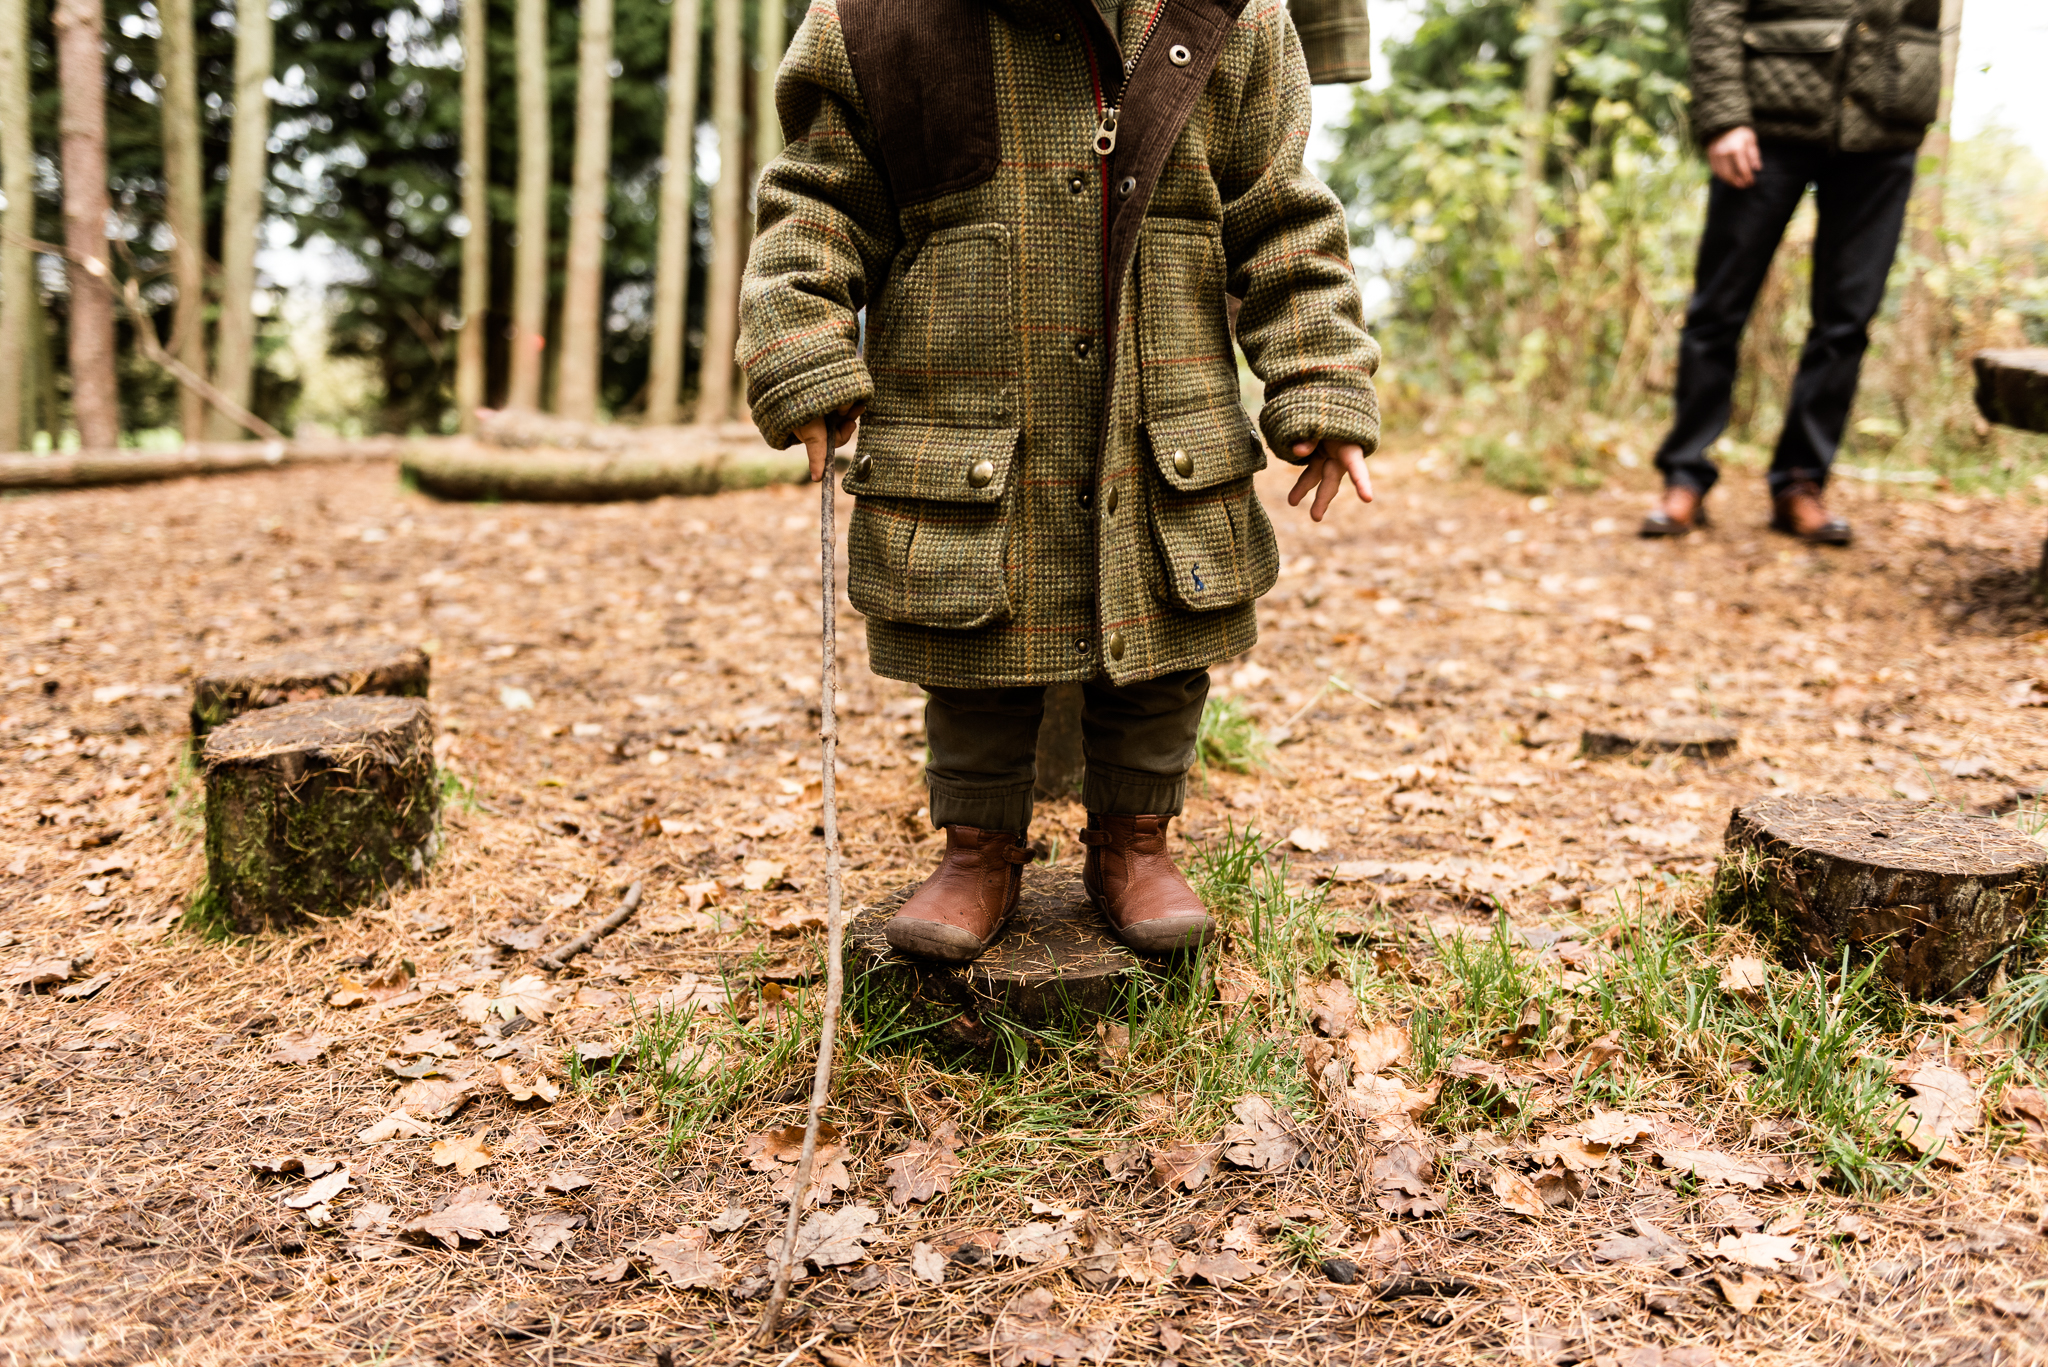 Autumn Documentary Lifestyle Family Photography at Clent Hills, Worcestershire Country Park countryside outdoors nature - Jenny Harper-2.jpg